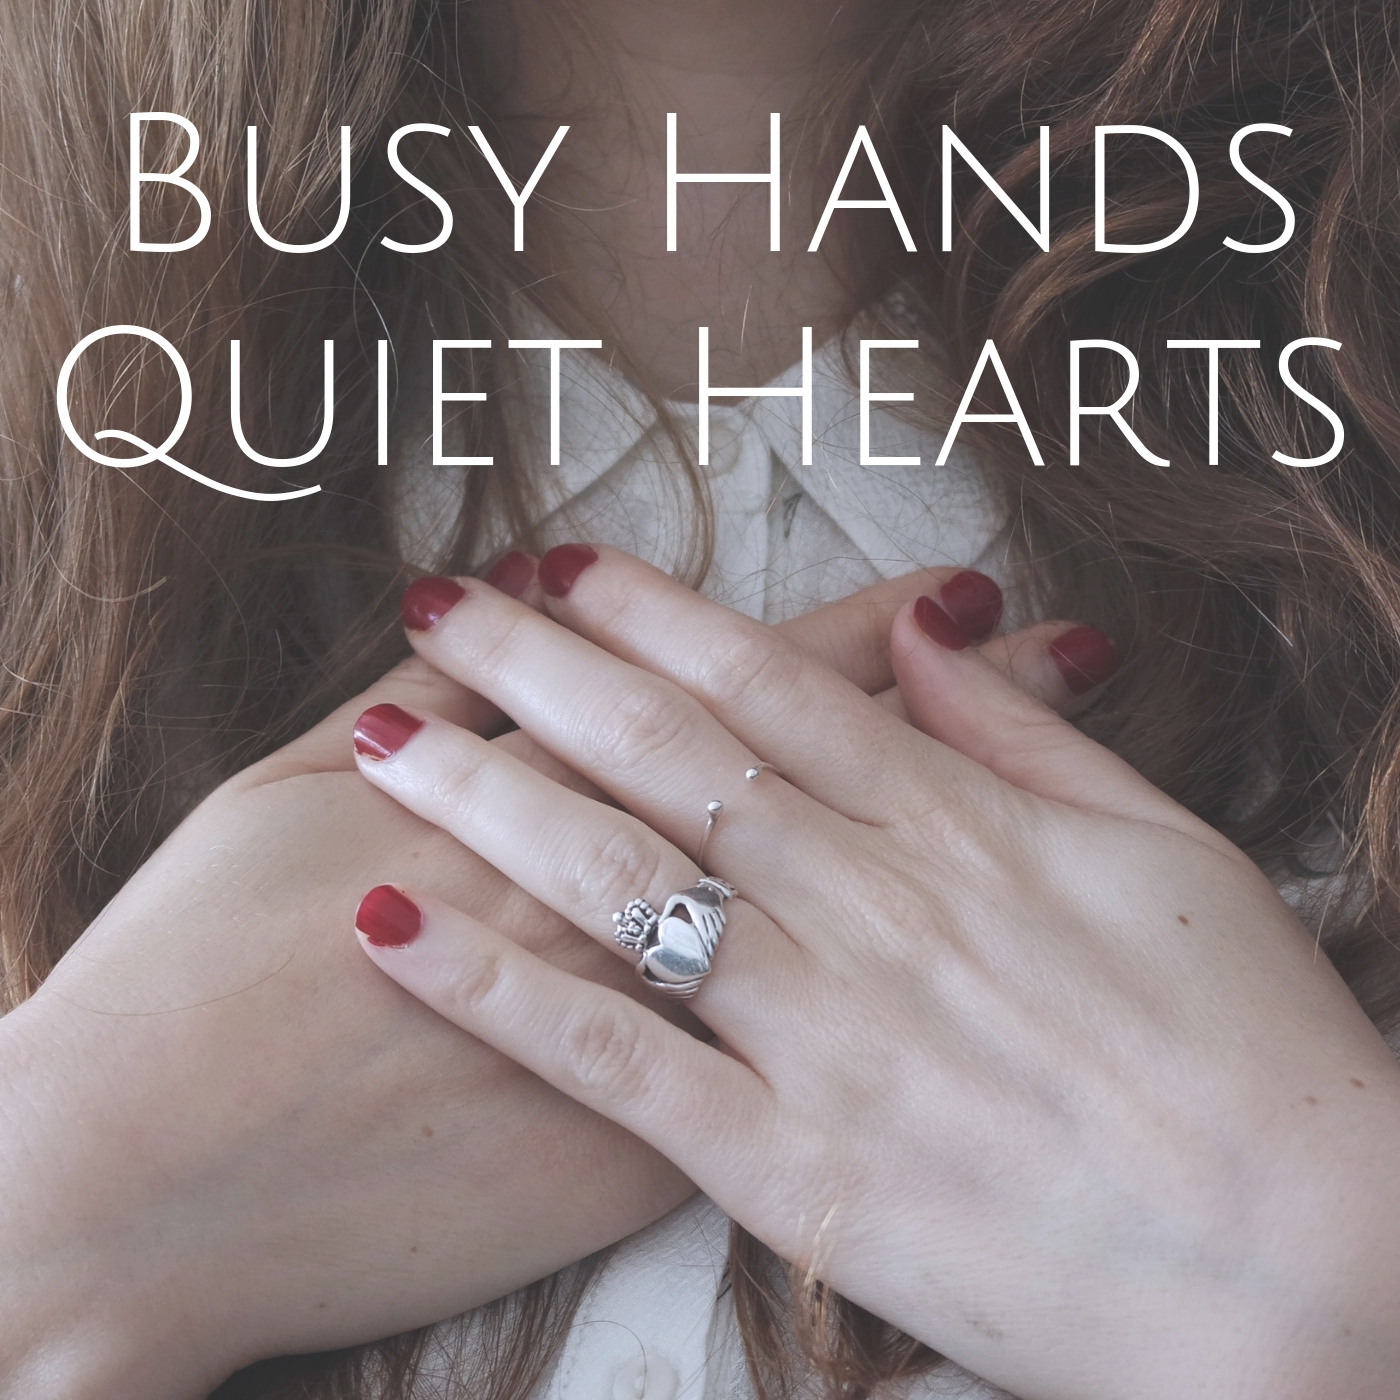 PIcture of a woman's hands over her heart, she is wearing a ring with hands holding a heart. Text overlay: Busy Hands Quiet Hearts